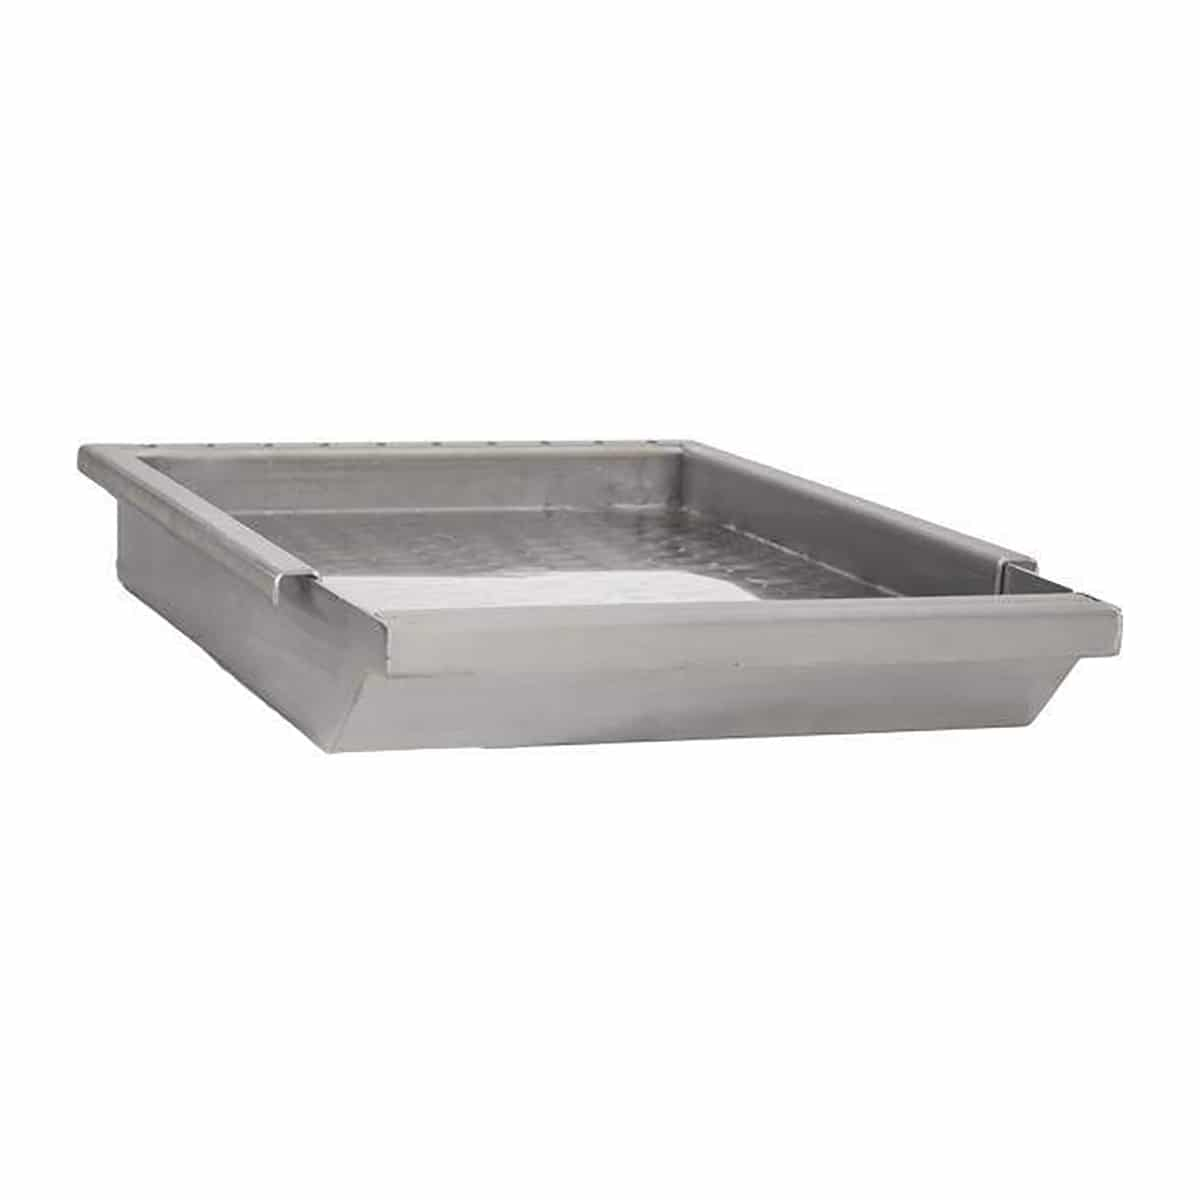 Coyote Stainless Steel Drop-in Griddle